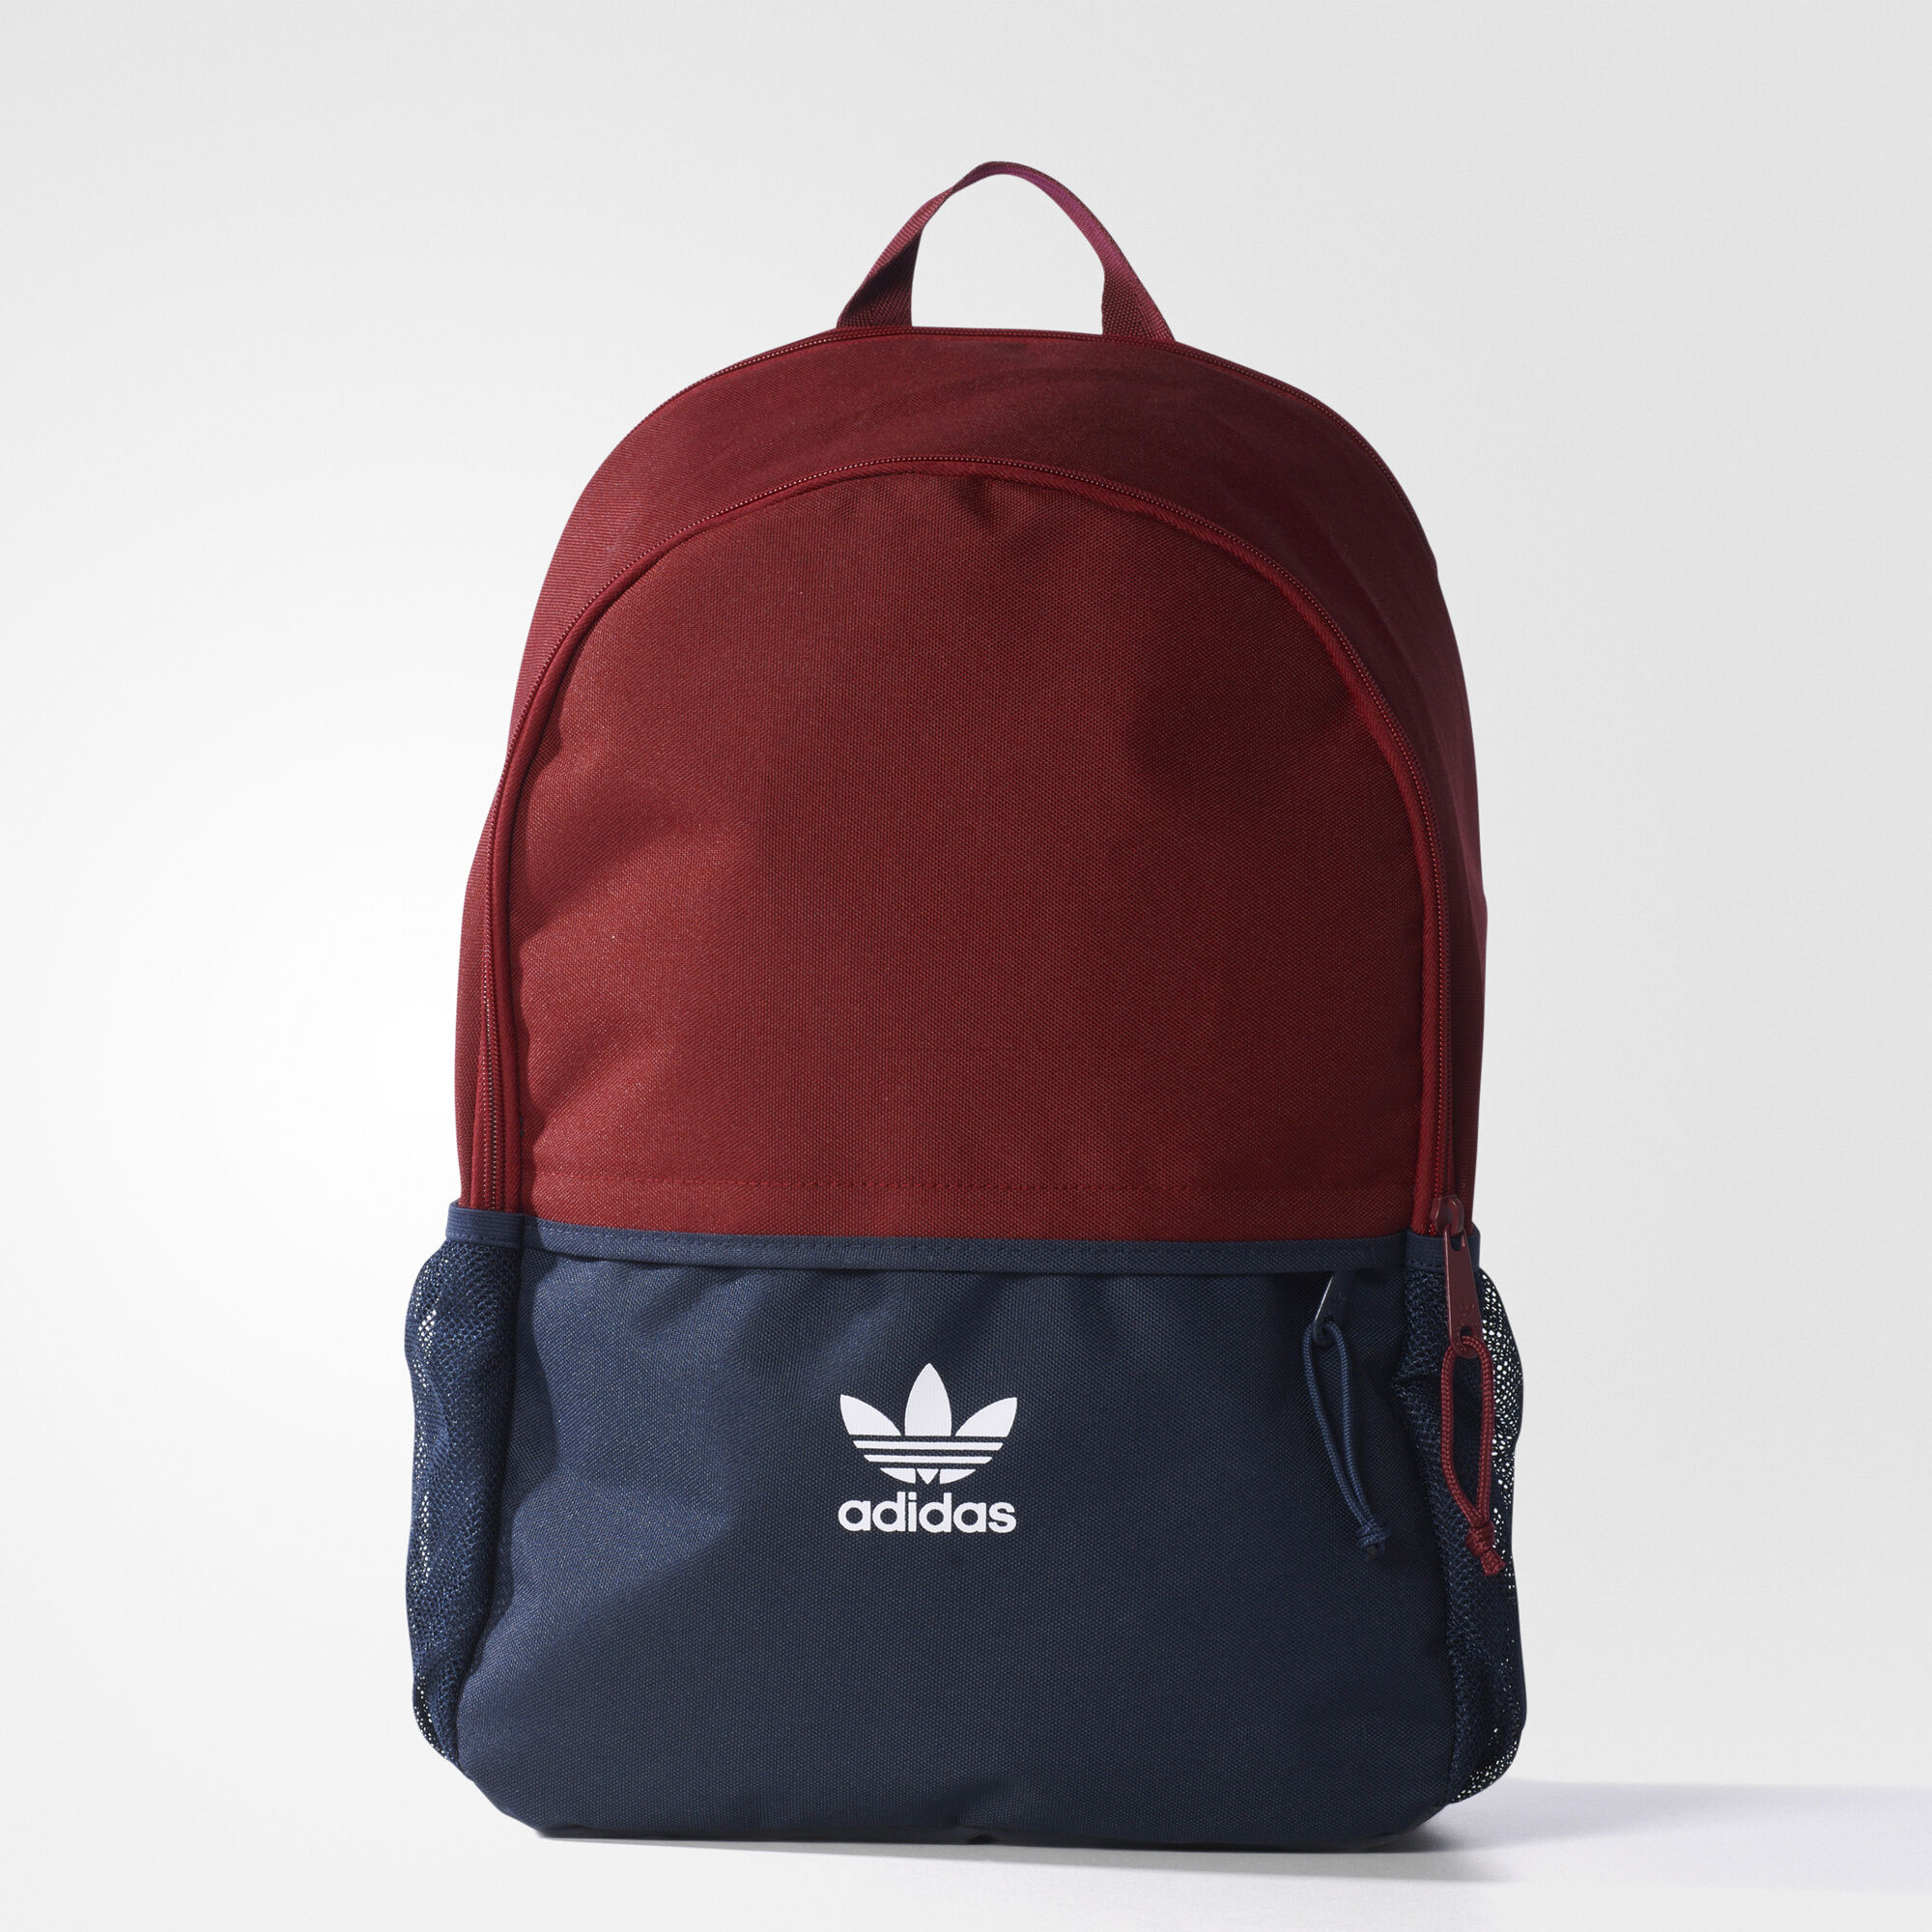 adidas essentials rucksack rot adidas switzerland. Black Bedroom Furniture Sets. Home Design Ideas